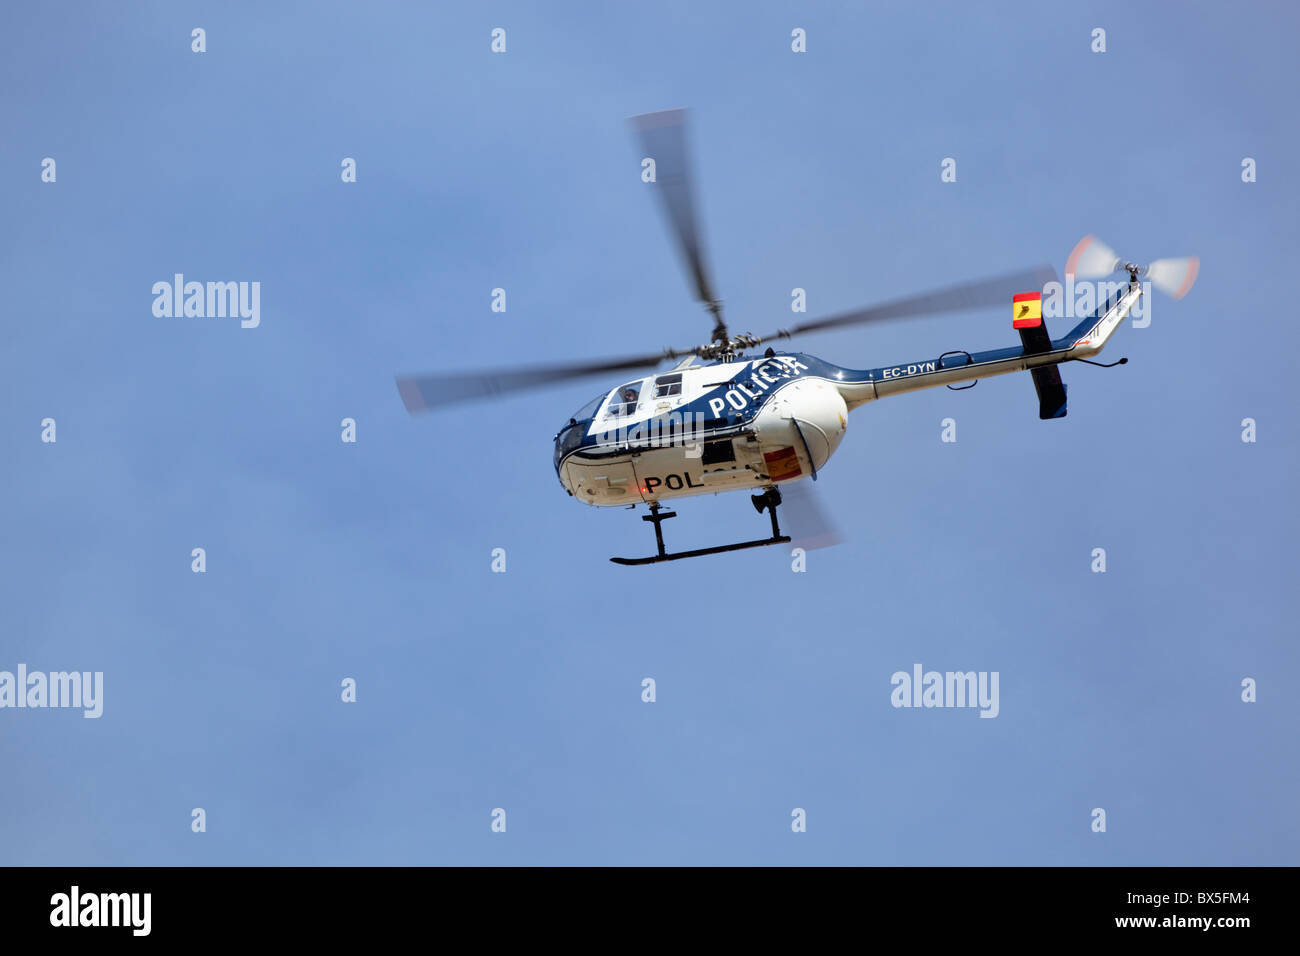 Spanish National Police helicopter. Policia Nacional. Type BO-105 series built by Eurocopter Group. - Stock Image